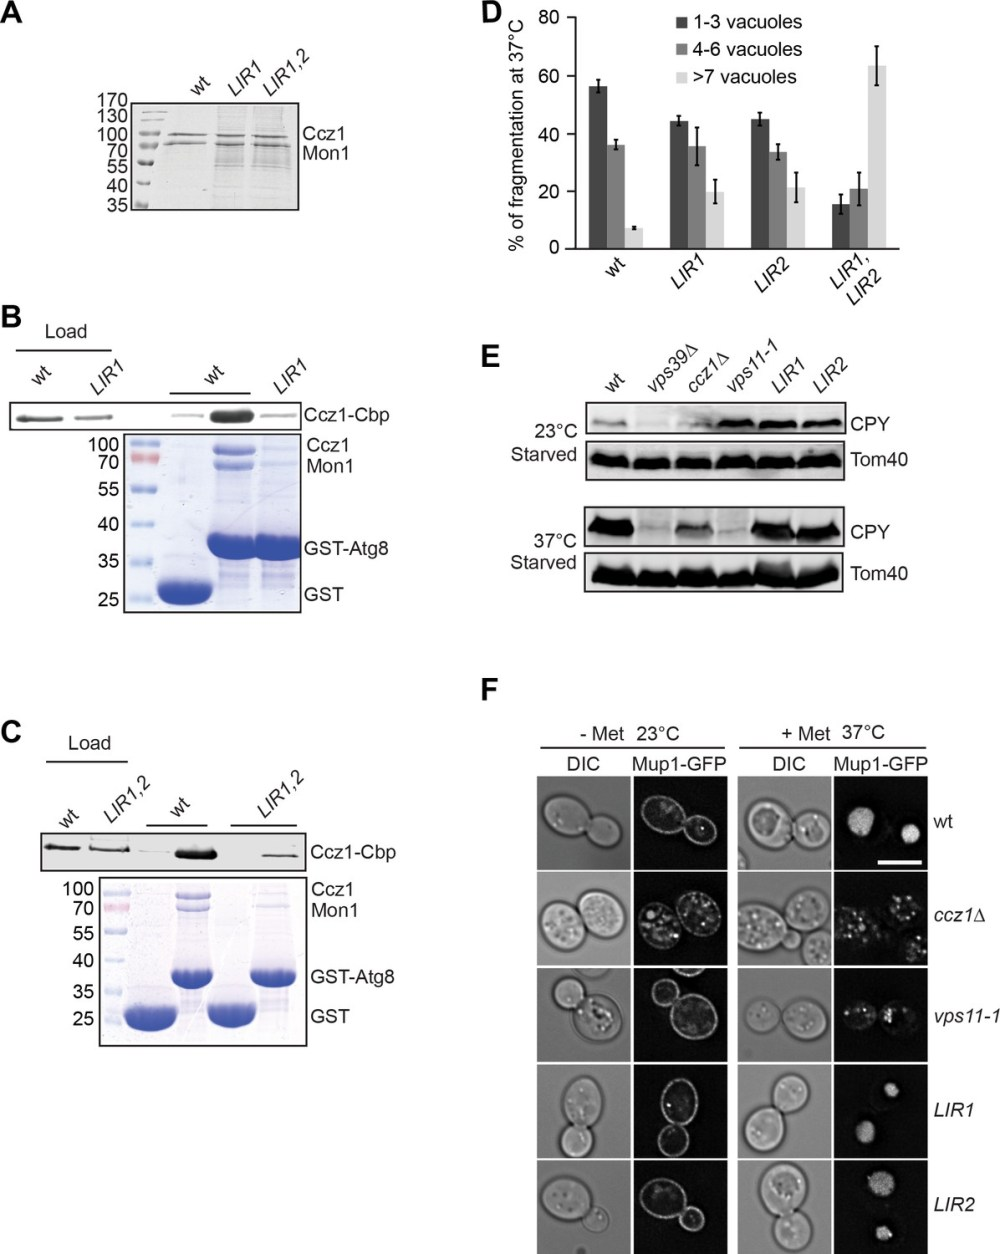 medium resolution of lir motifs in ccz1 are required for atg8 binding but not for the endocytic pathway